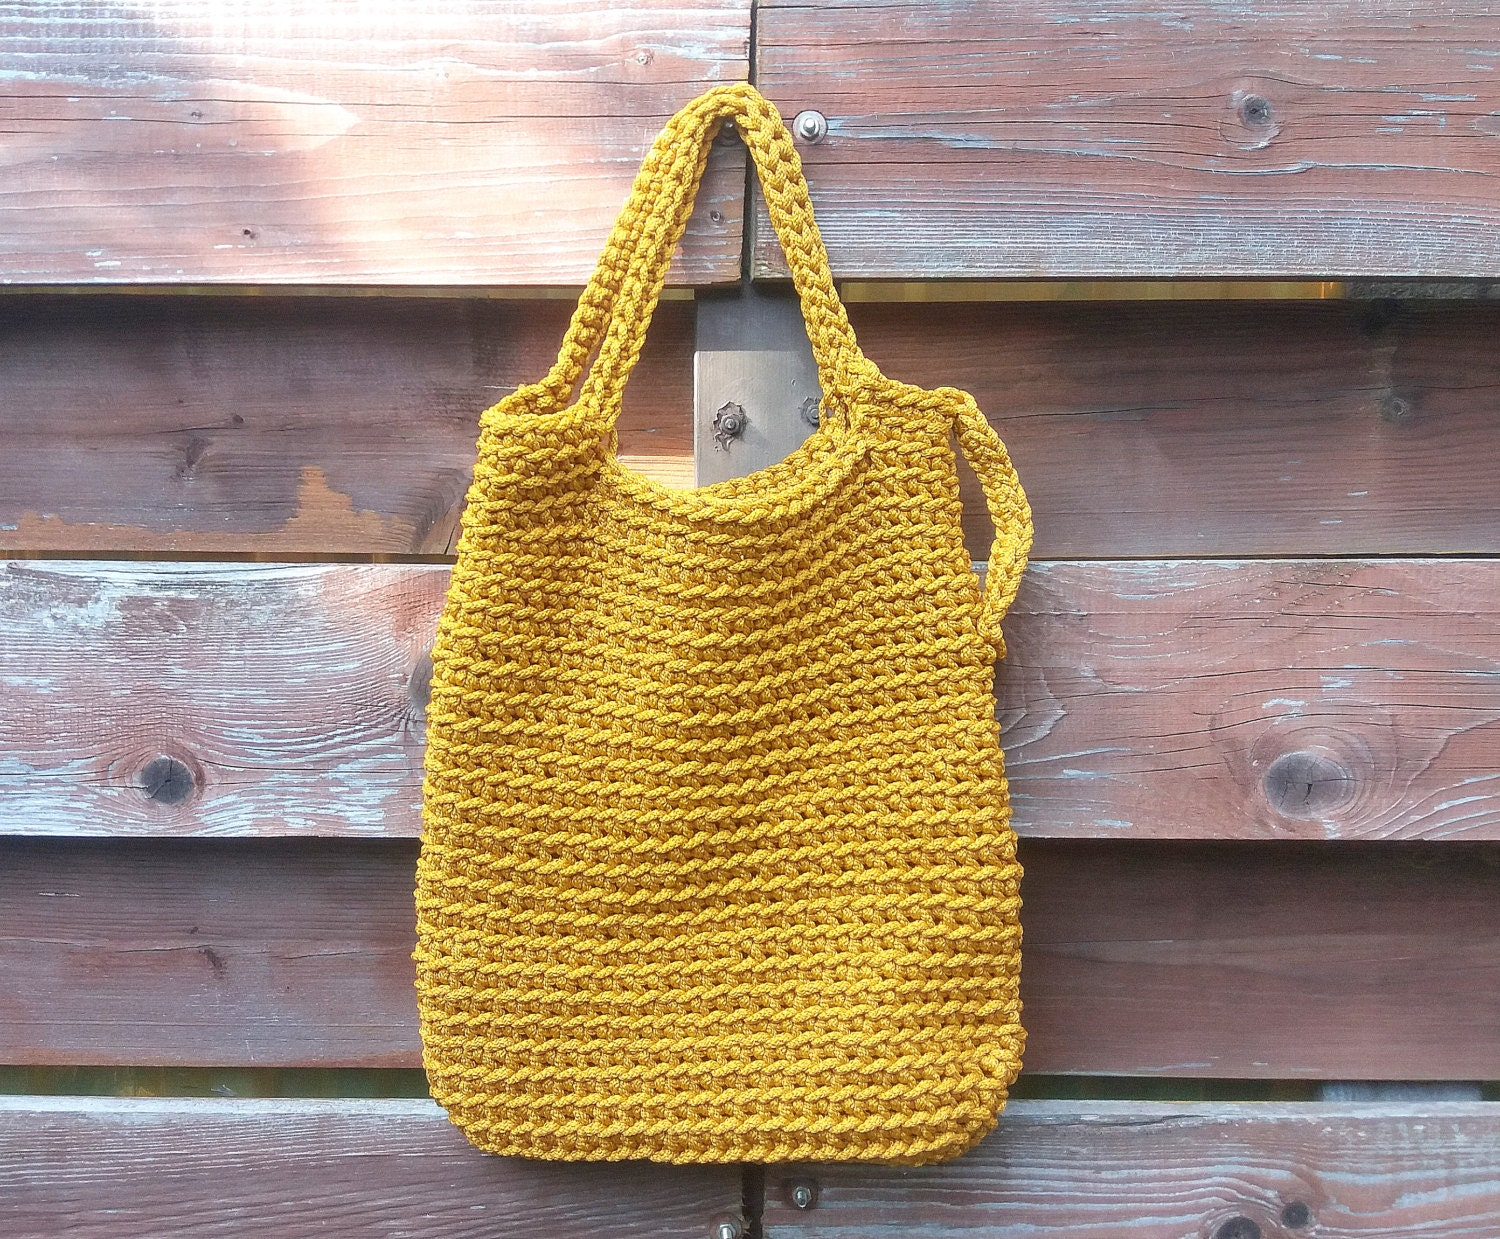 Knitting Rope For Sale : Mustard bags knitted pouch handmade cord bag crochet